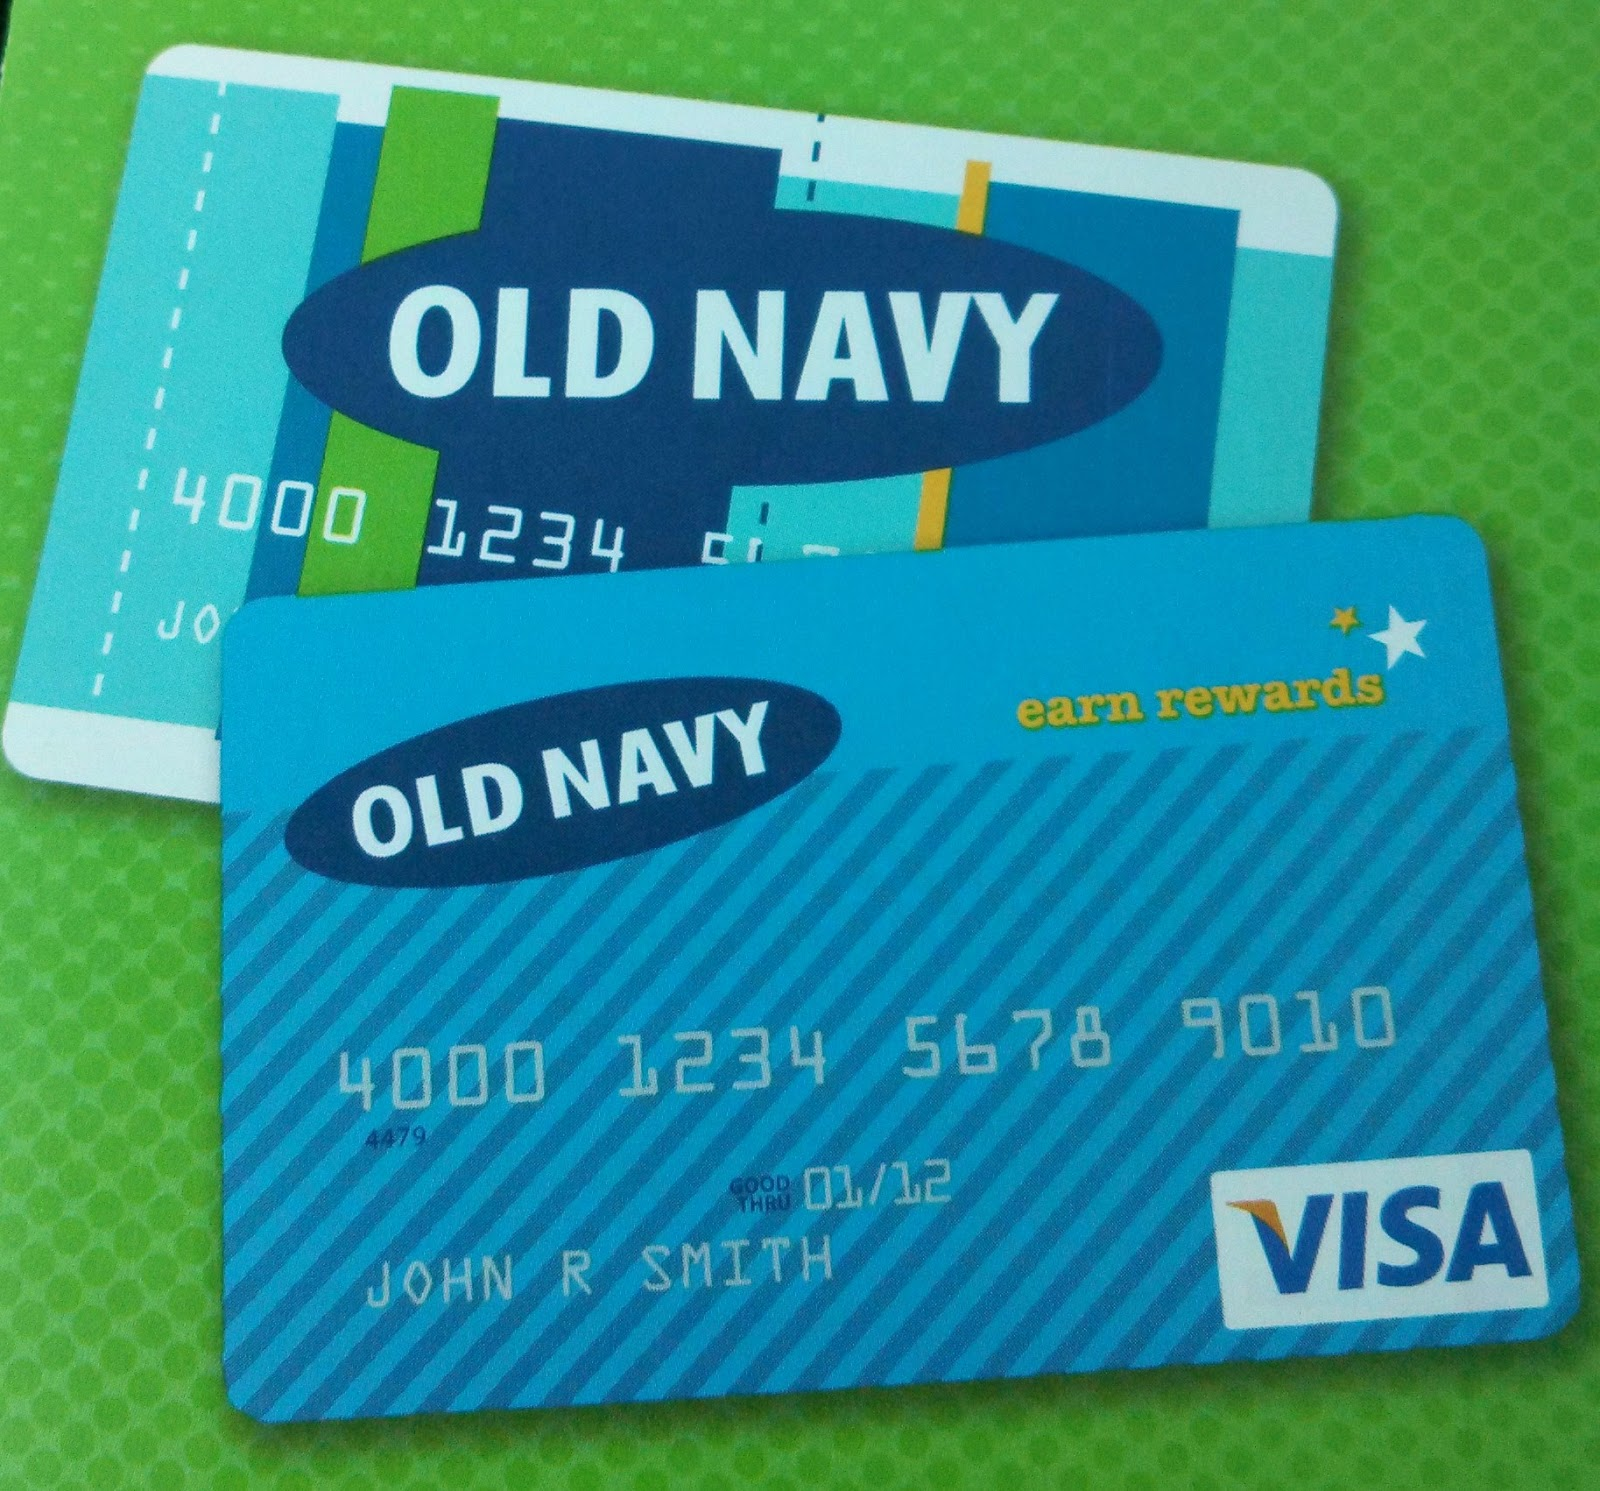 Old Navy Credit Card Customer Service: The Old Navy credit card customer service number is for the Old Navy card and for the Old Navy Visa card. Please follow this link for a full customer service contact page.